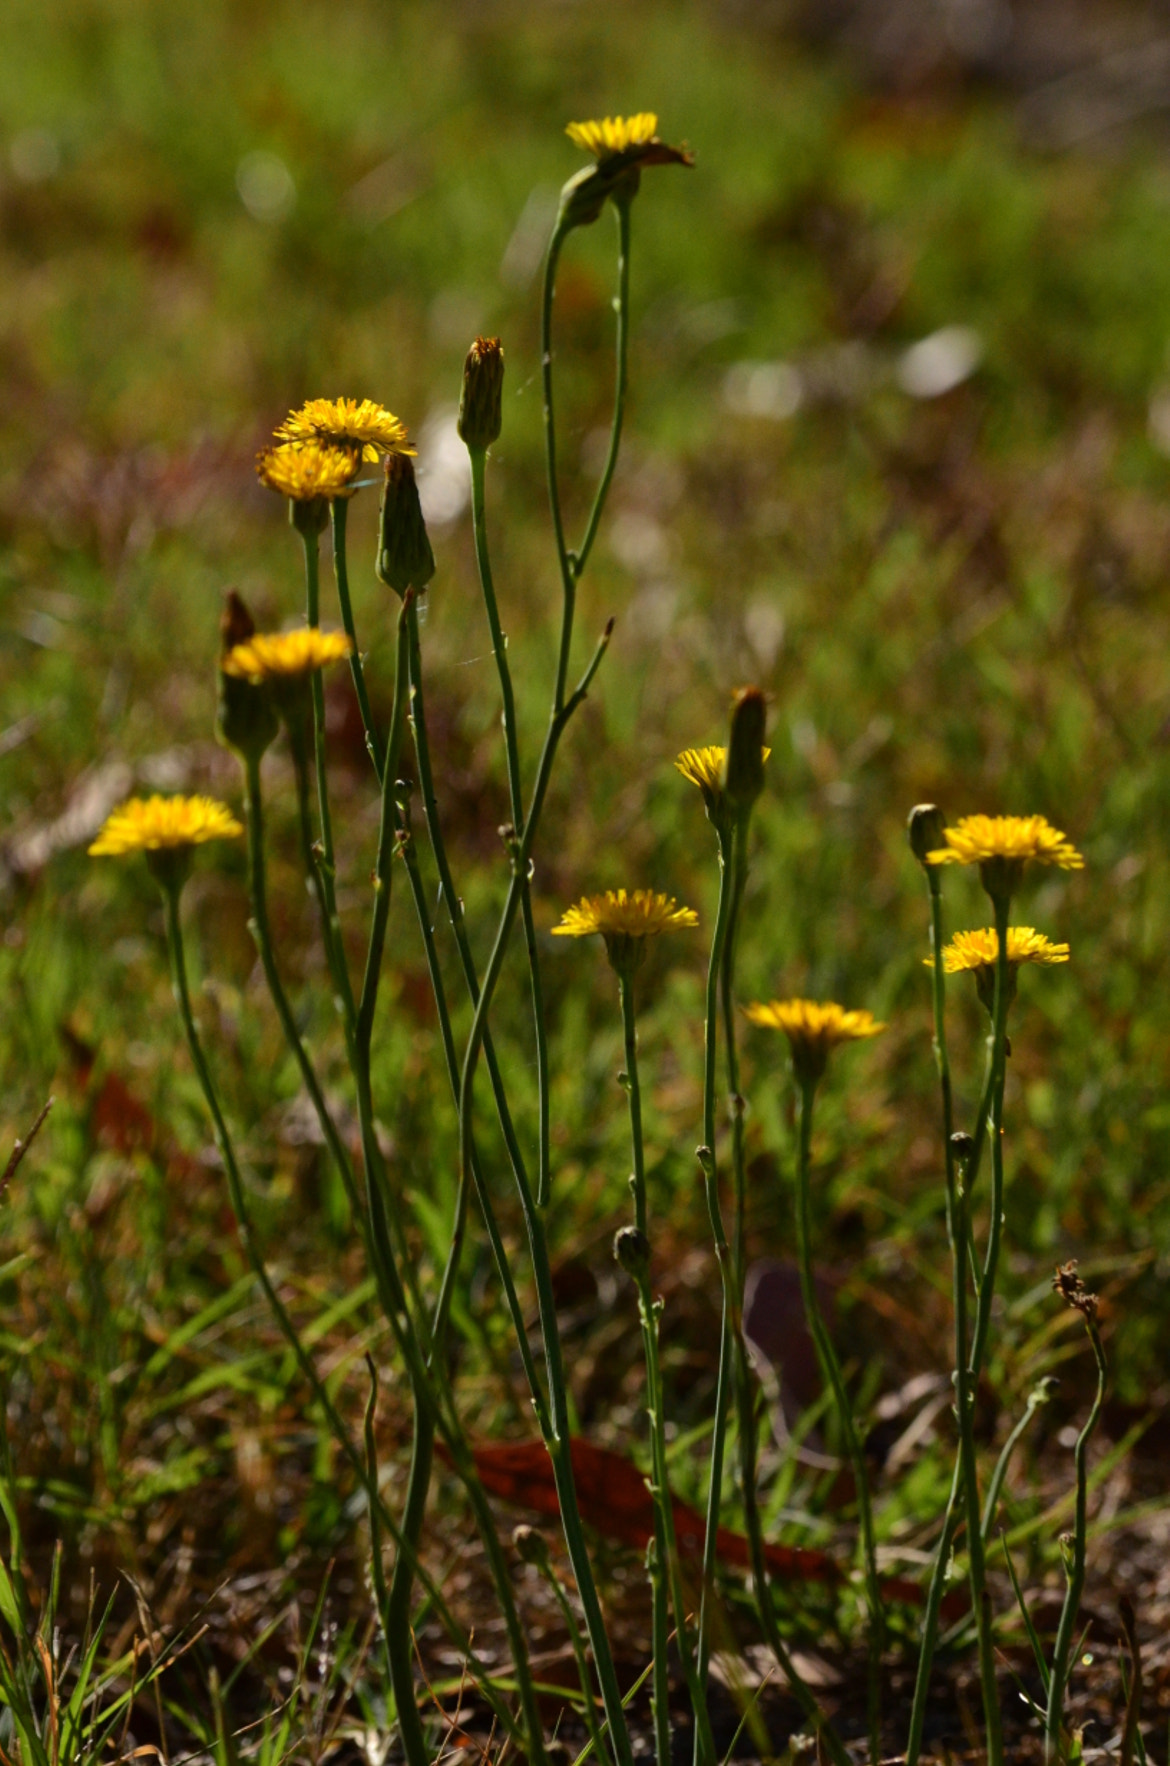 Photograph Sunny Weeds by rayelz design on 500px